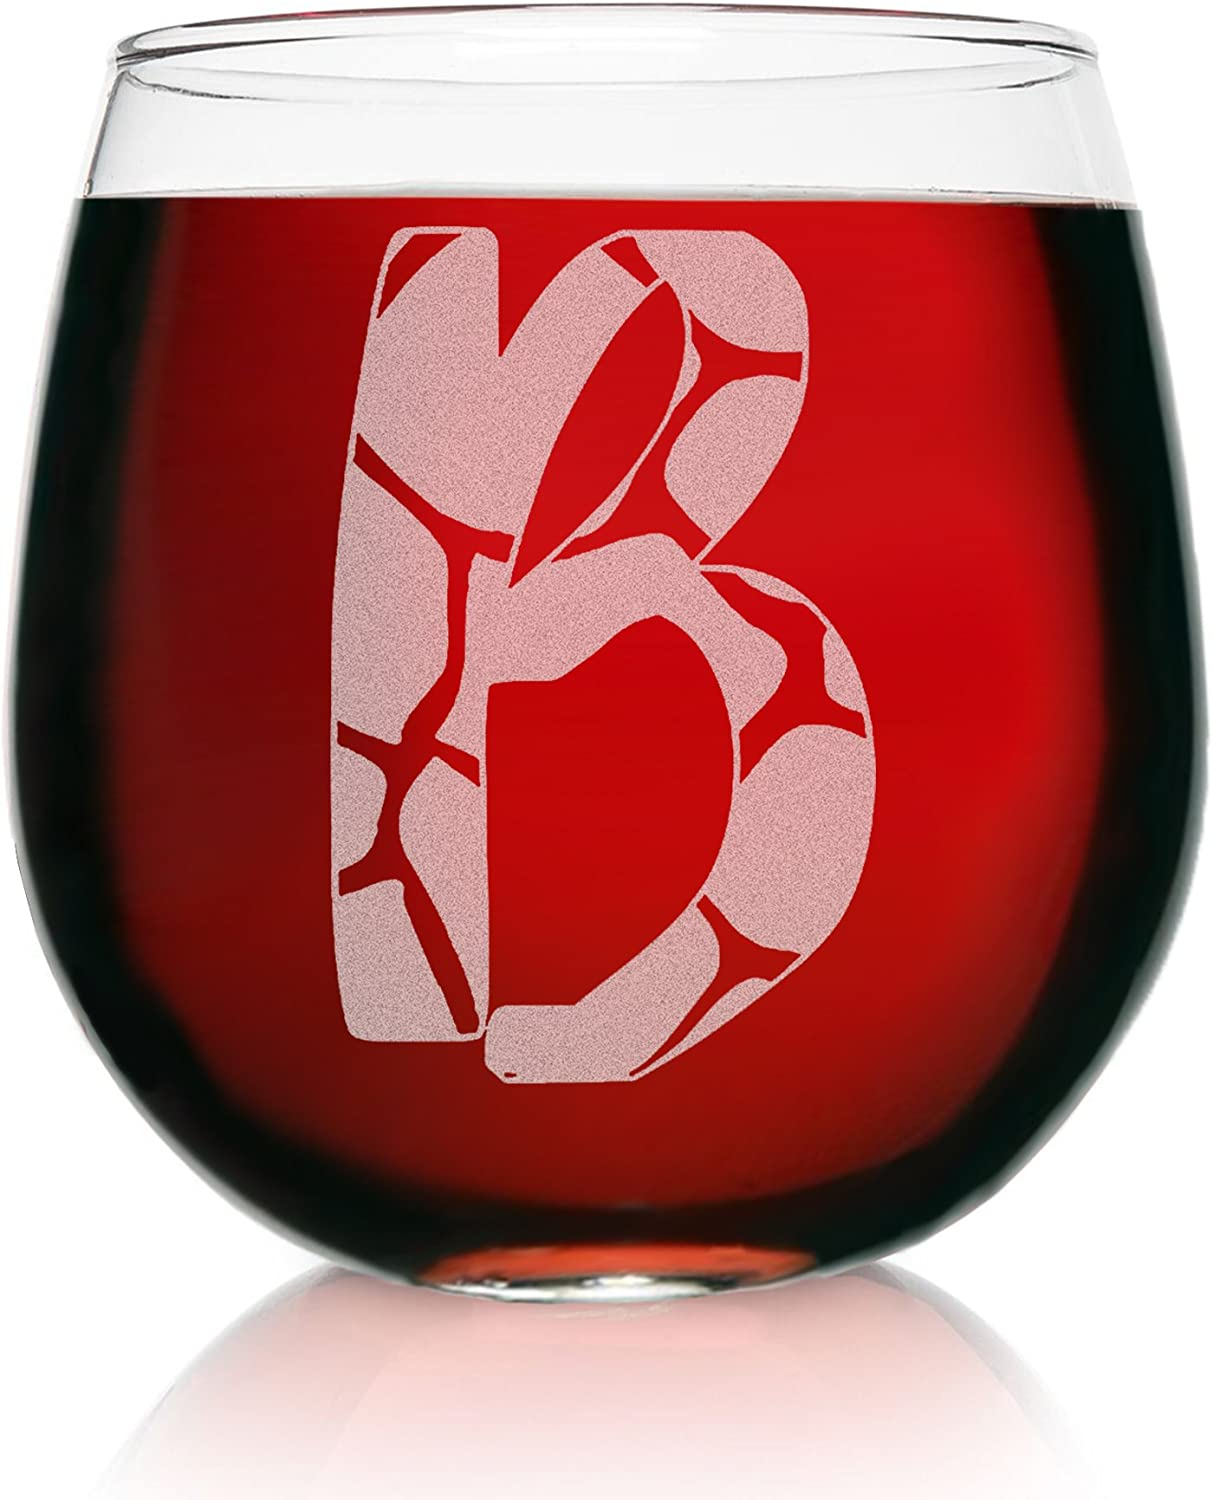 """New Etched Large Wine Glass Free Gift Box /""""GIRAFFE/"""" Design es"""